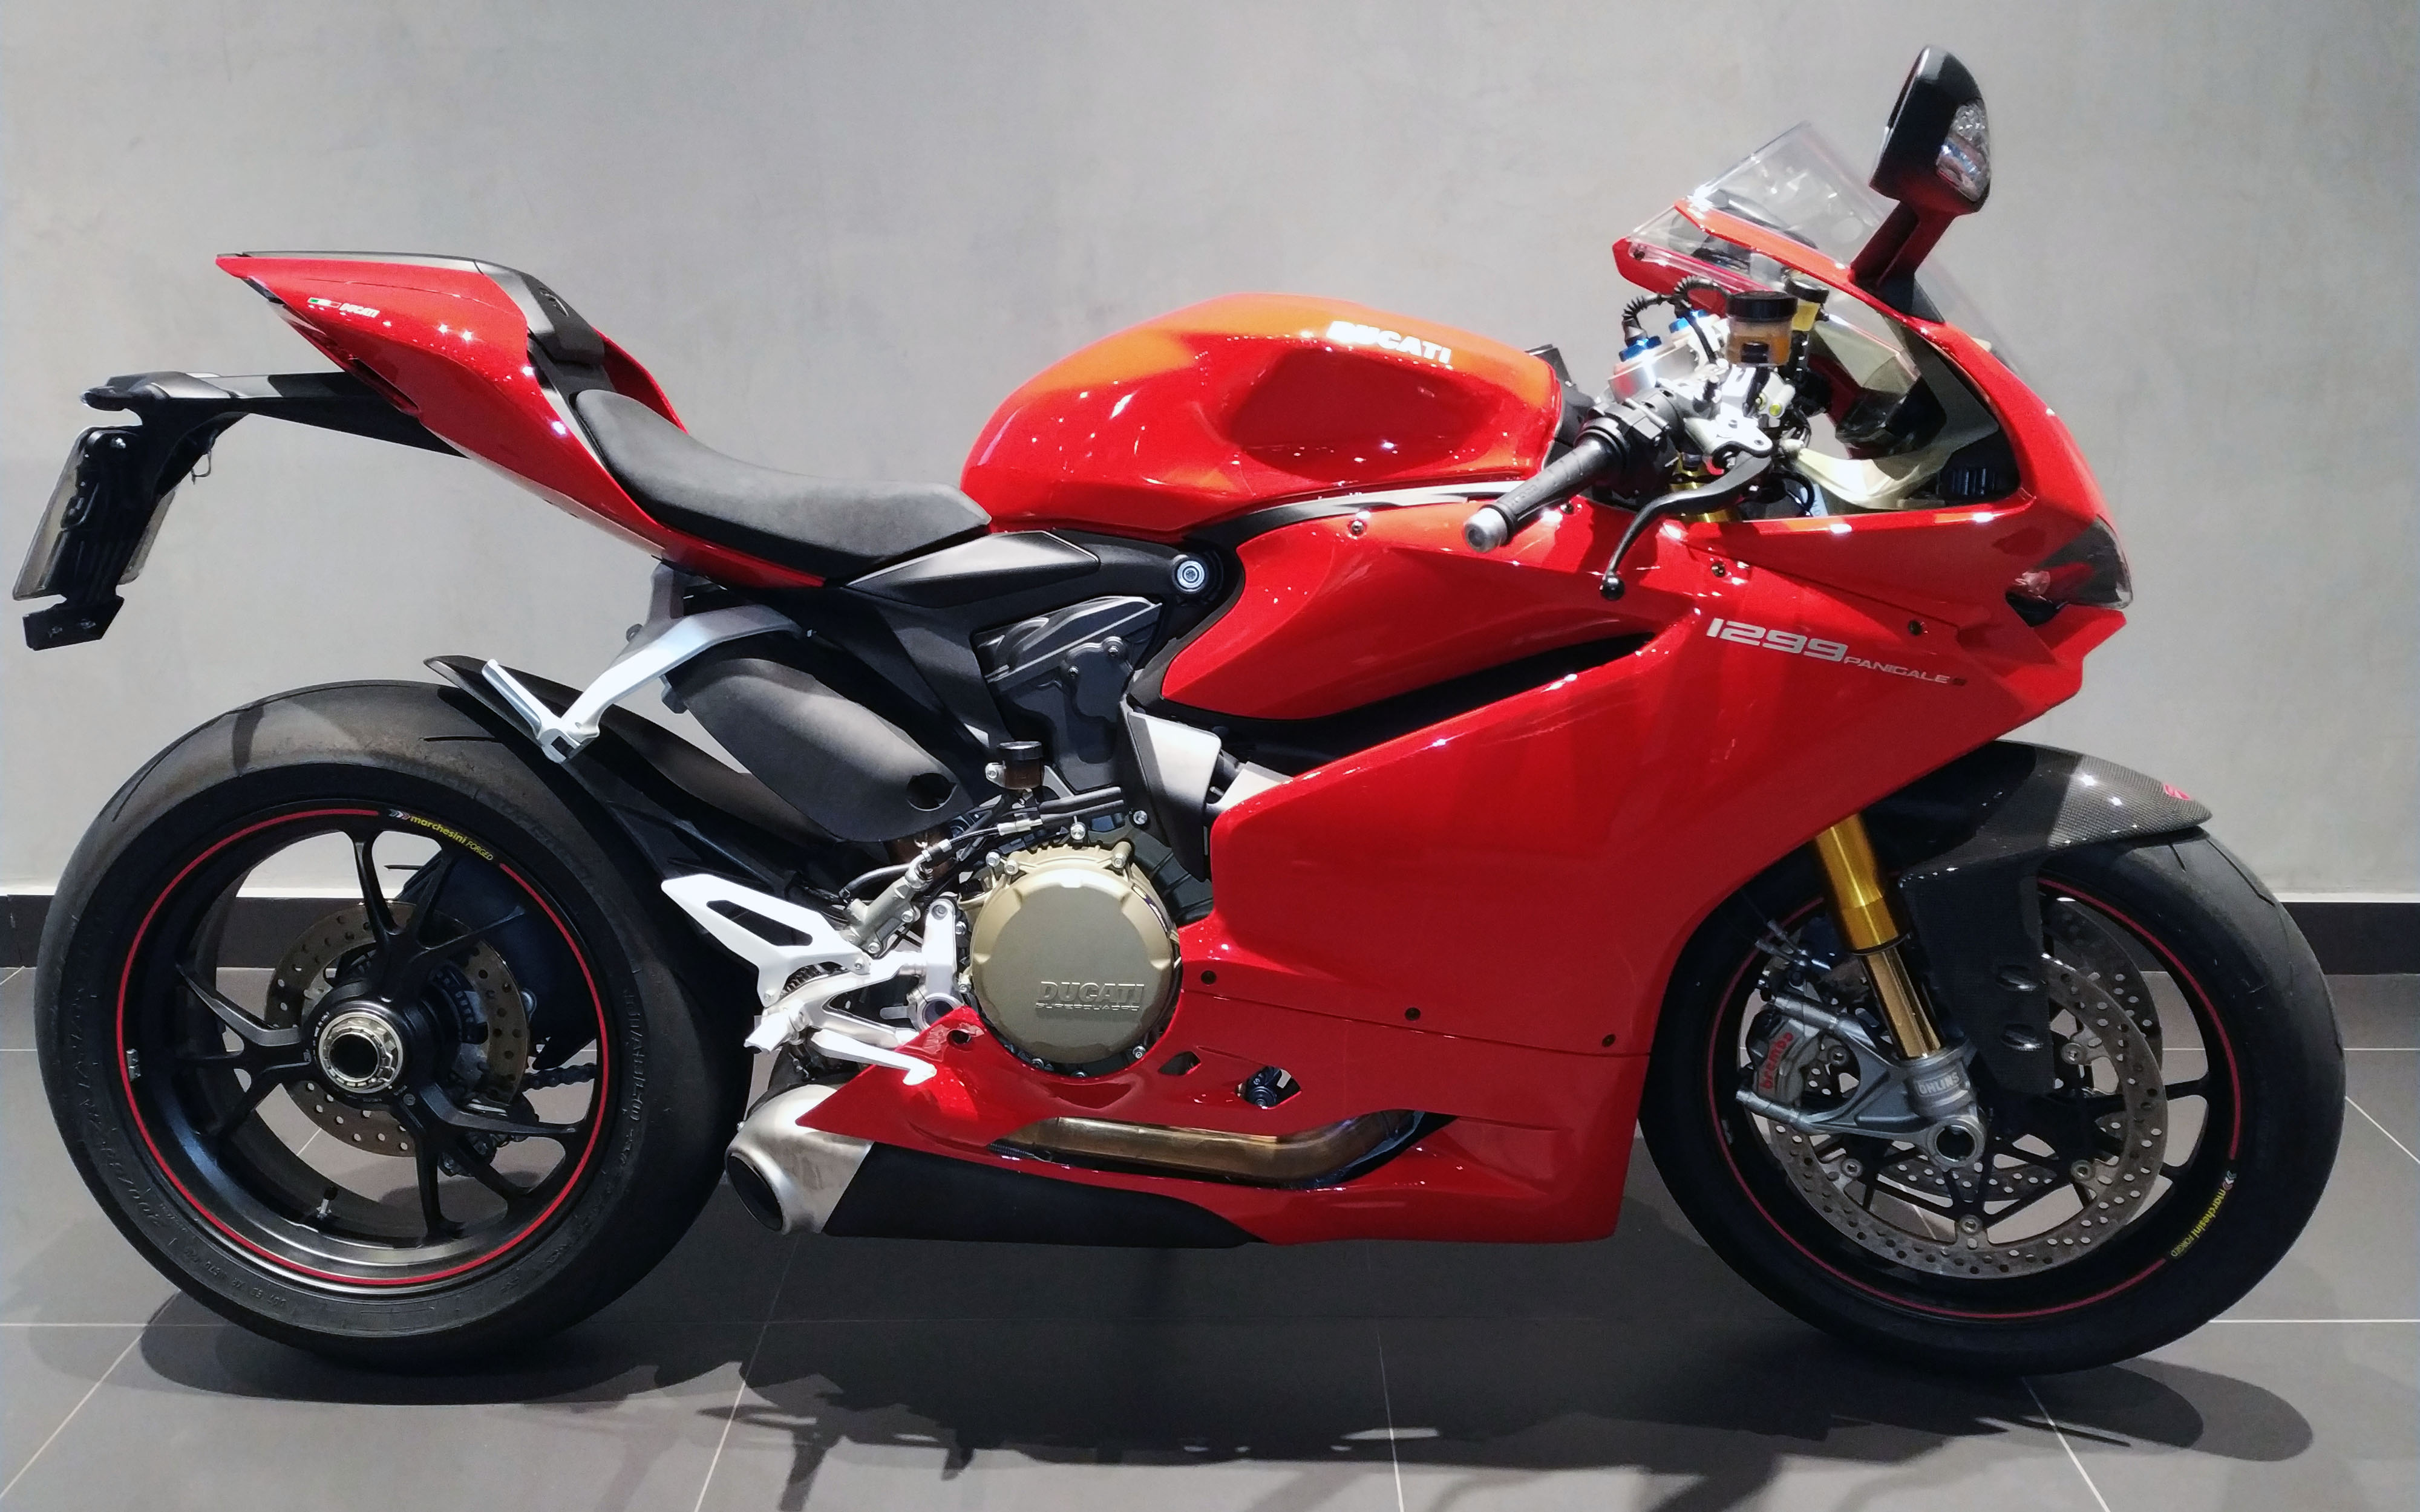 Panigale 1299 S - 2018 - R$ 75.900,00